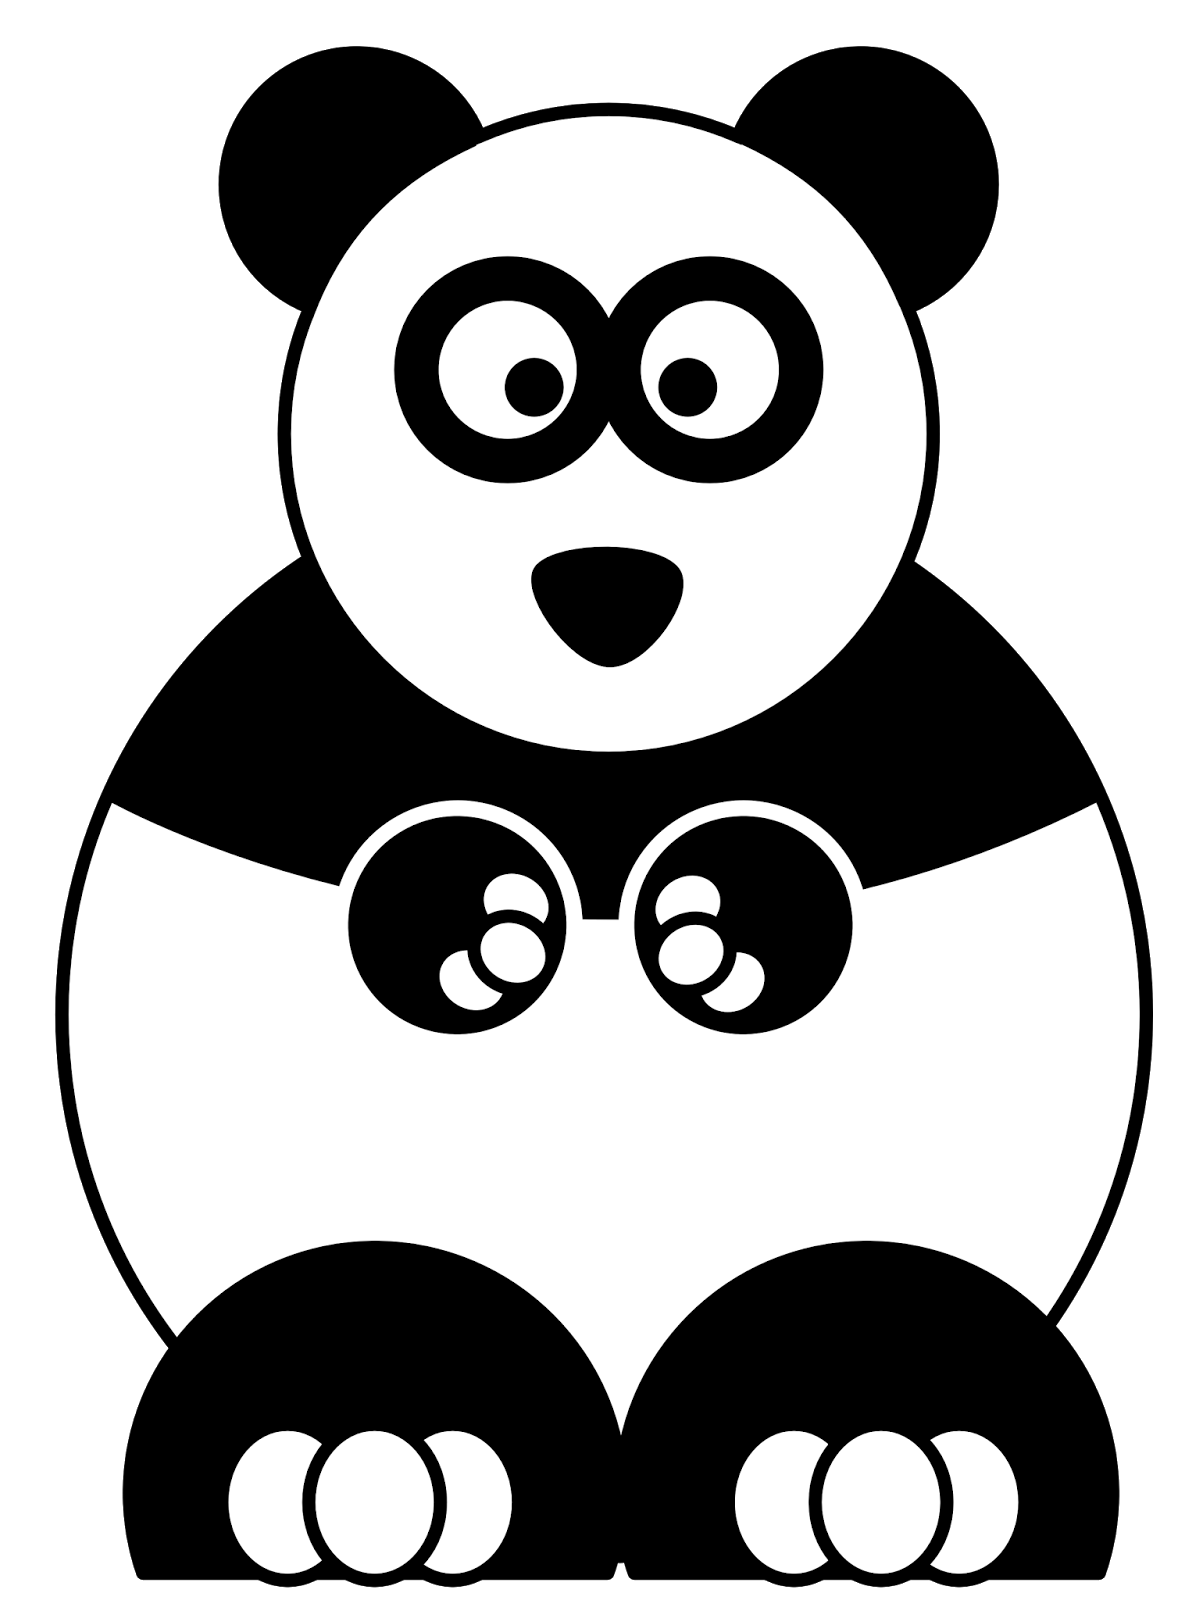 Kumpulan Gambar Hello Panda - Cartoon Panda , HD Wallpaper & Backgrounds